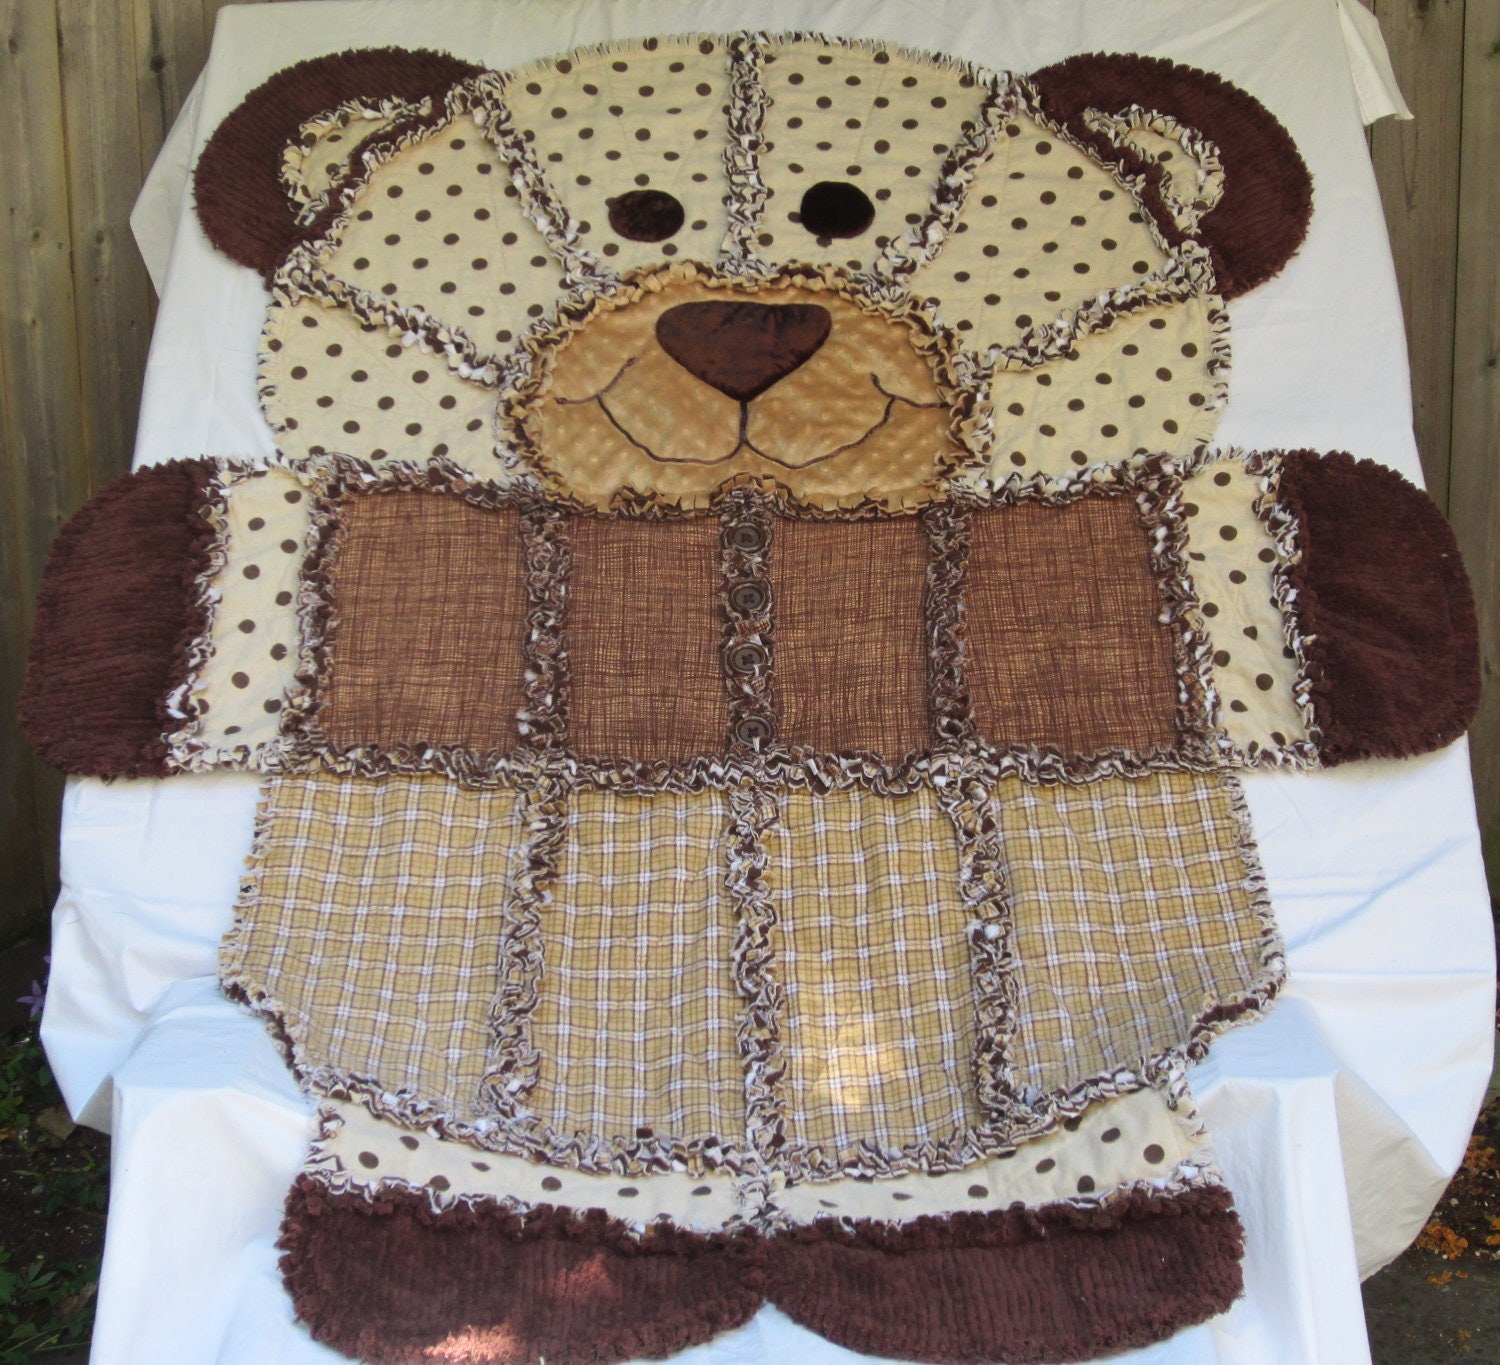 Bear Rag Quilt Childs Rag Quilt Chocolate Brown Dots